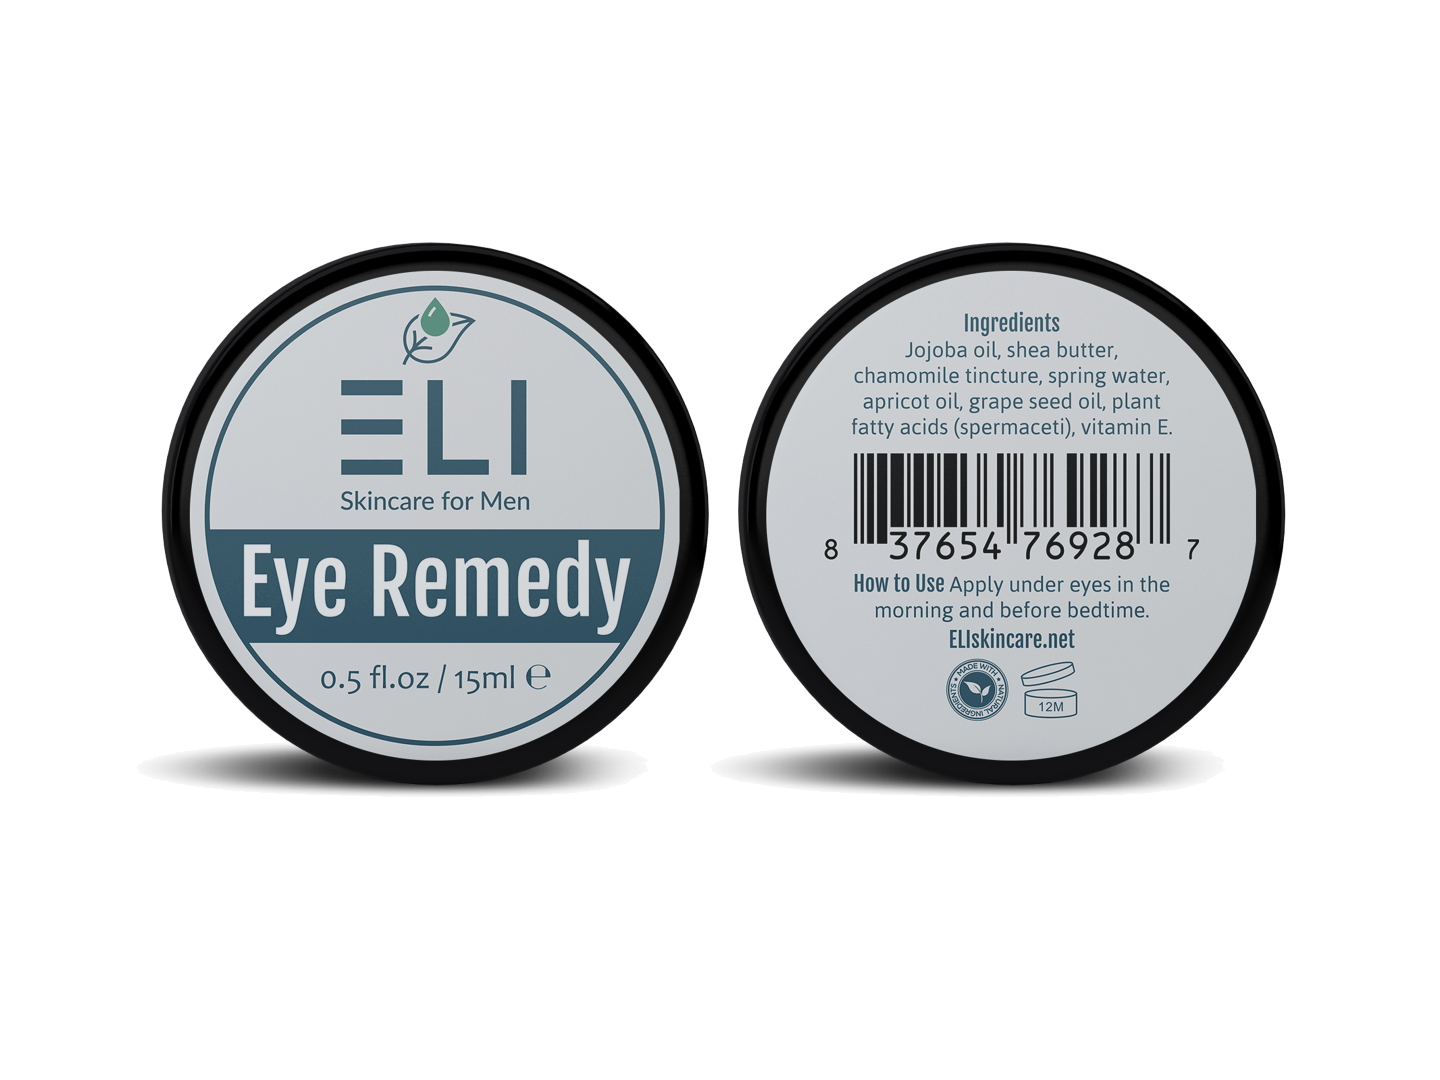 Eye Remedy